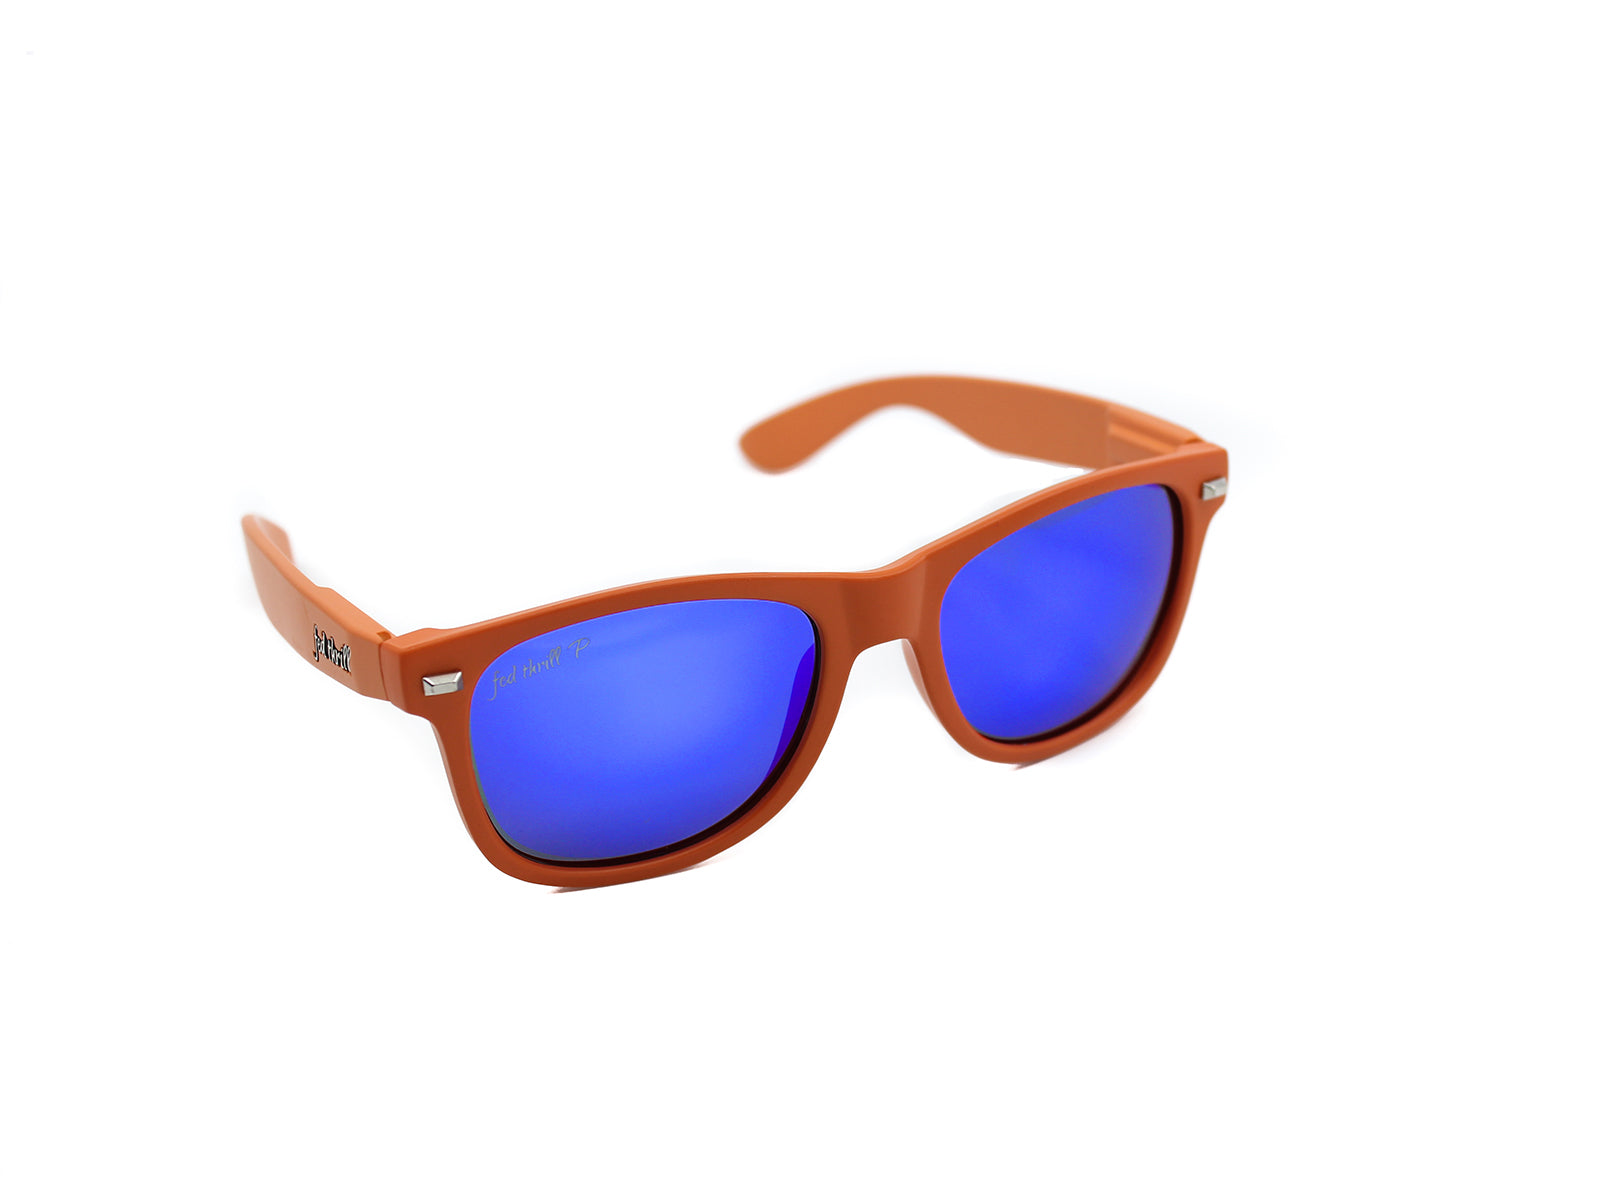 Fultons - Swamps: Orange / Mirrored Blue Polarized